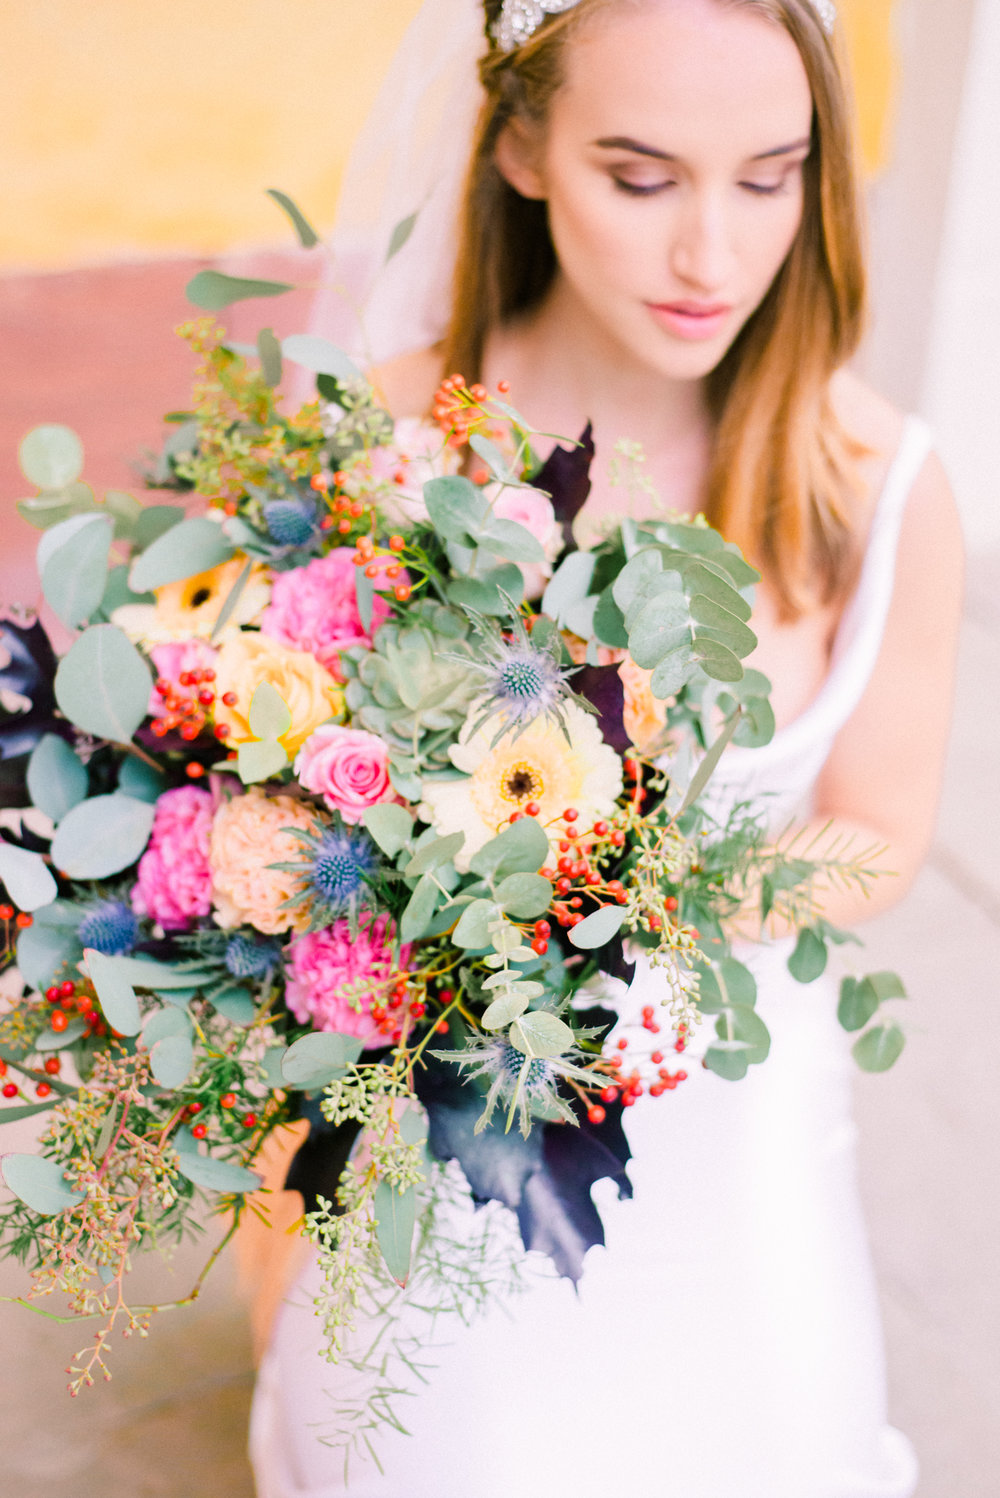 Elegant Organic Fall Swedish Bridal Wedding Styled Shoot - Erika Alvarenga Photography-99.jpg